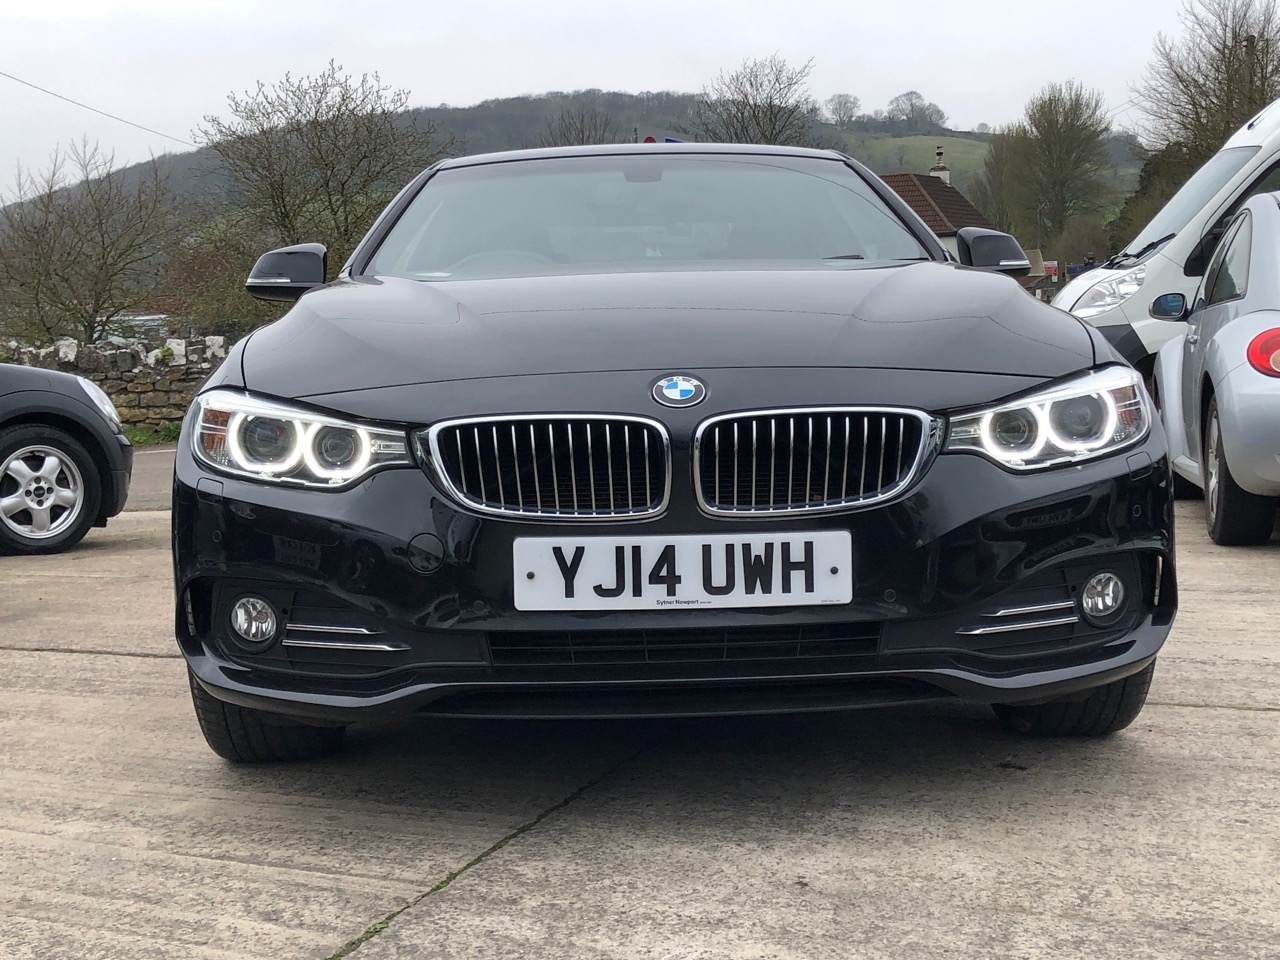 BMW 4 Series 2.0 420d Luxury xDrive 2dr – Outstanding full